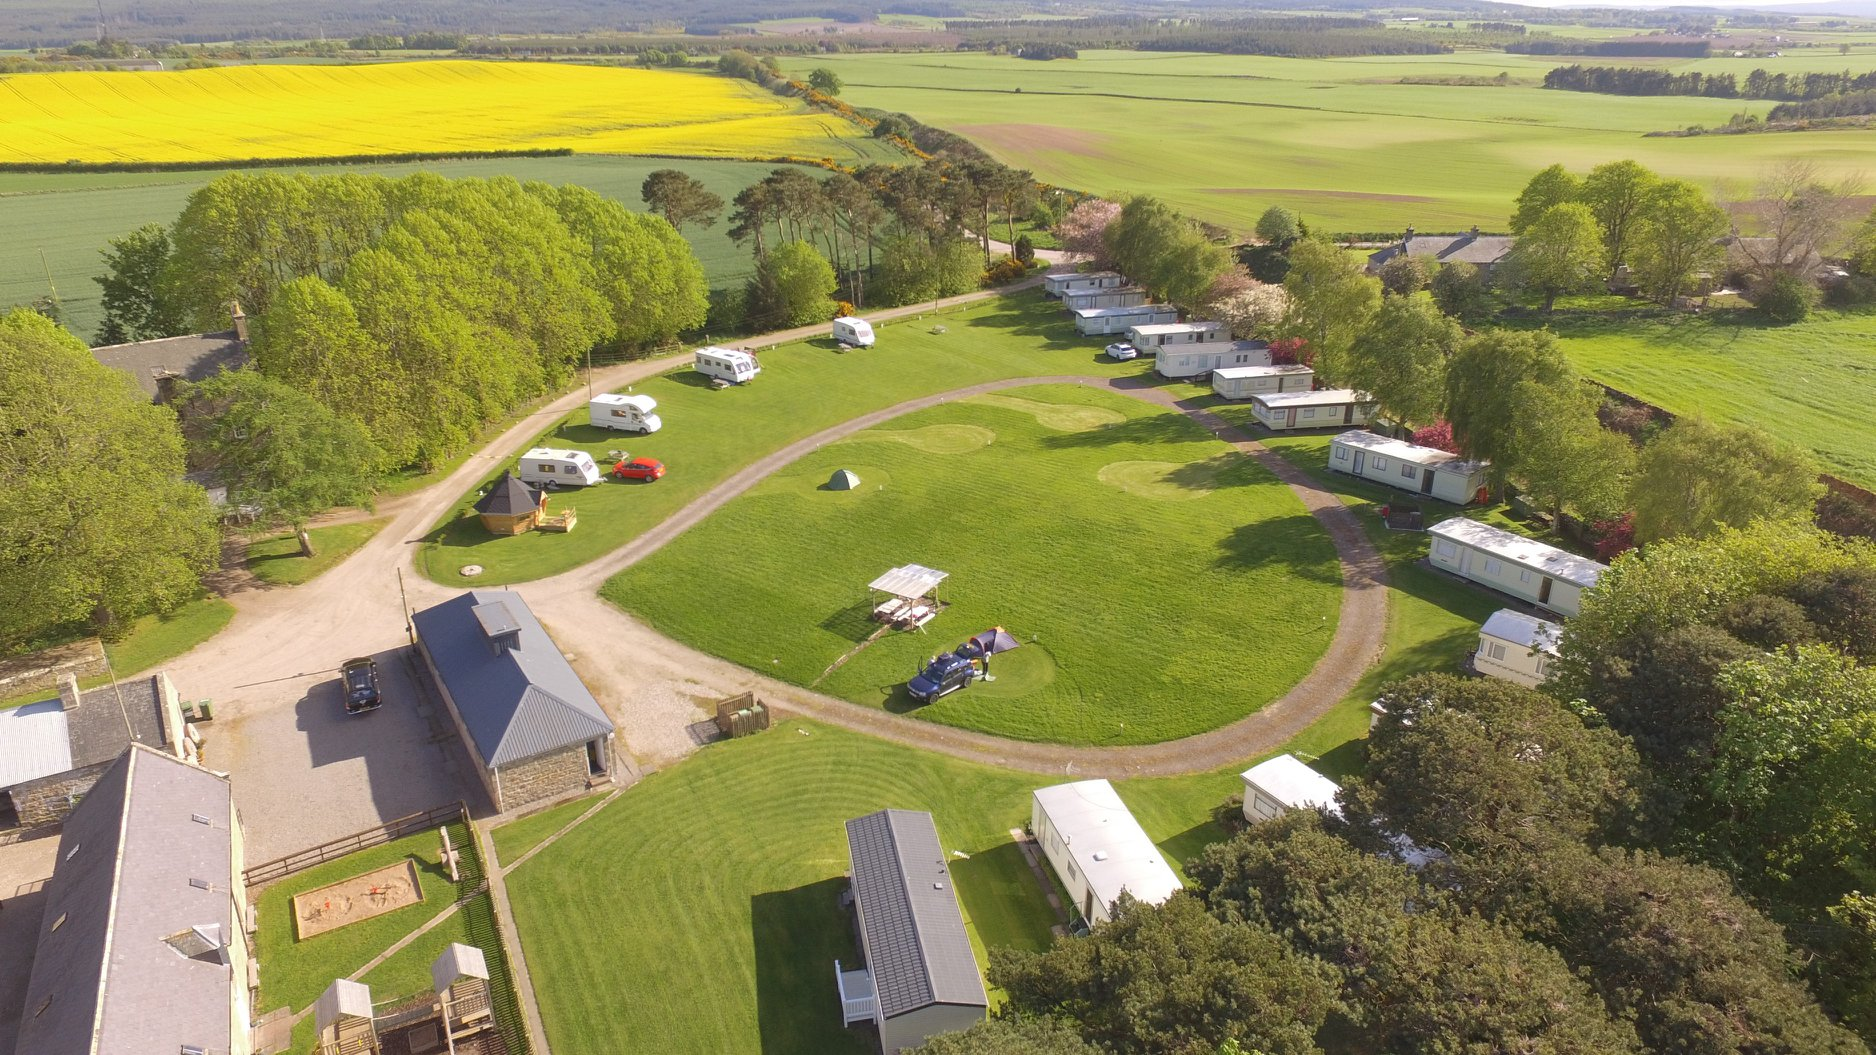 Drone shot of North Alves Holiday Park featuring campervans